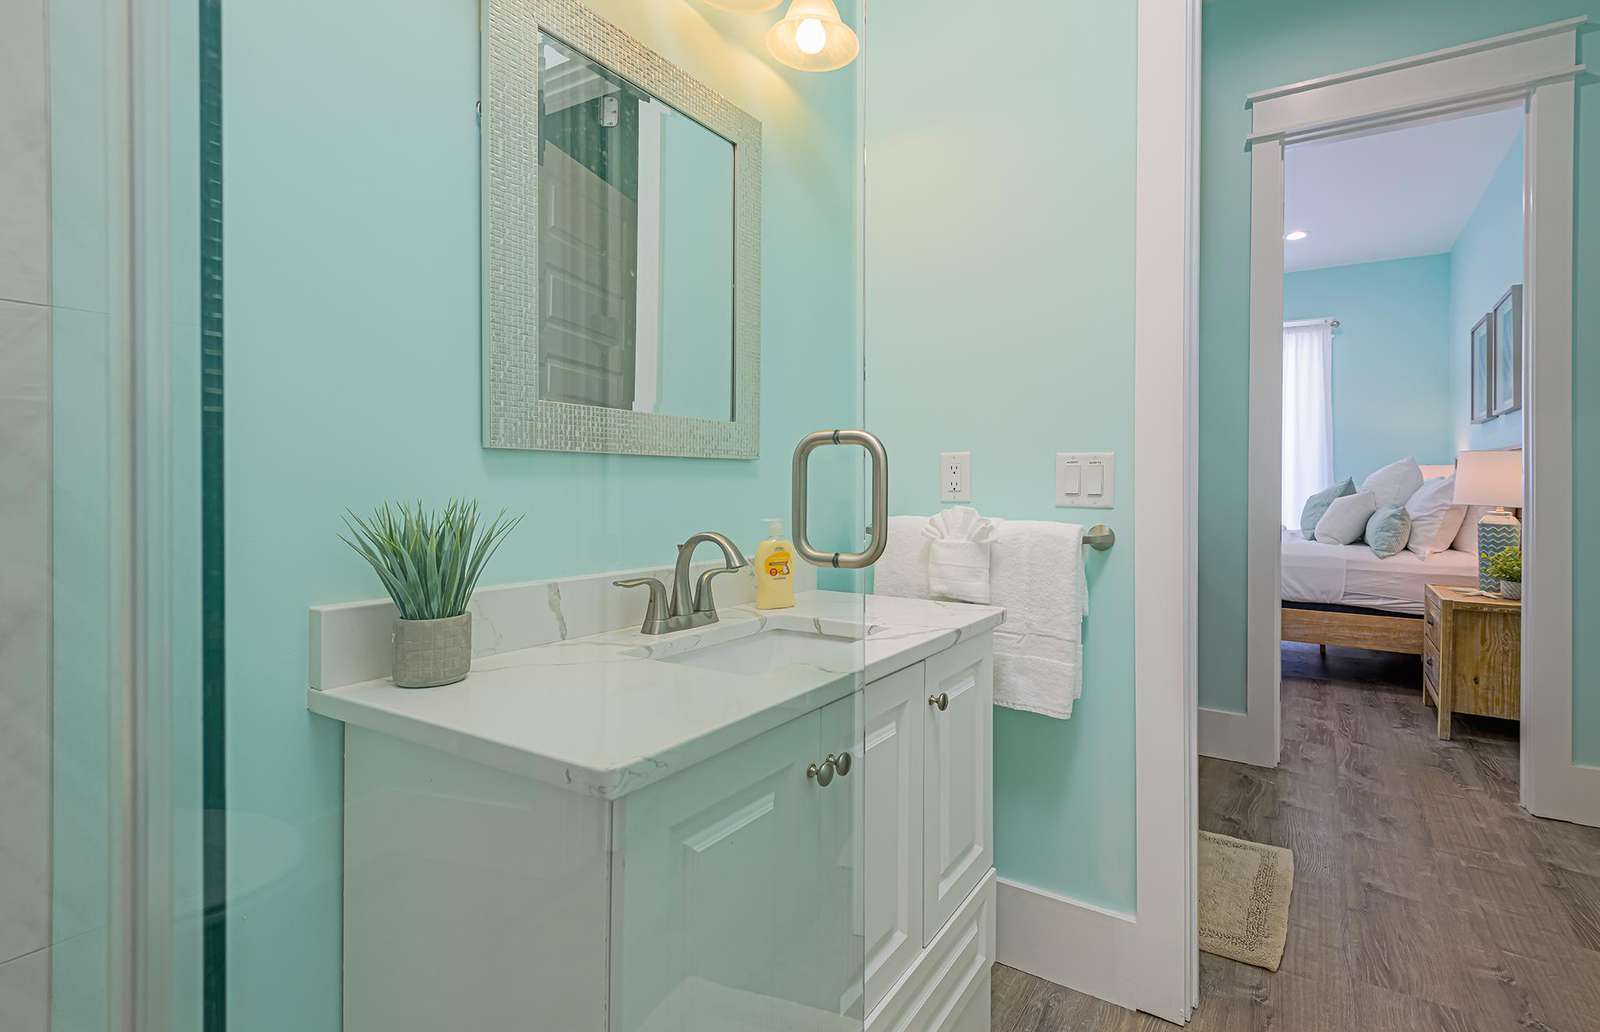 2 vanities and 2 sinks in the master bath!